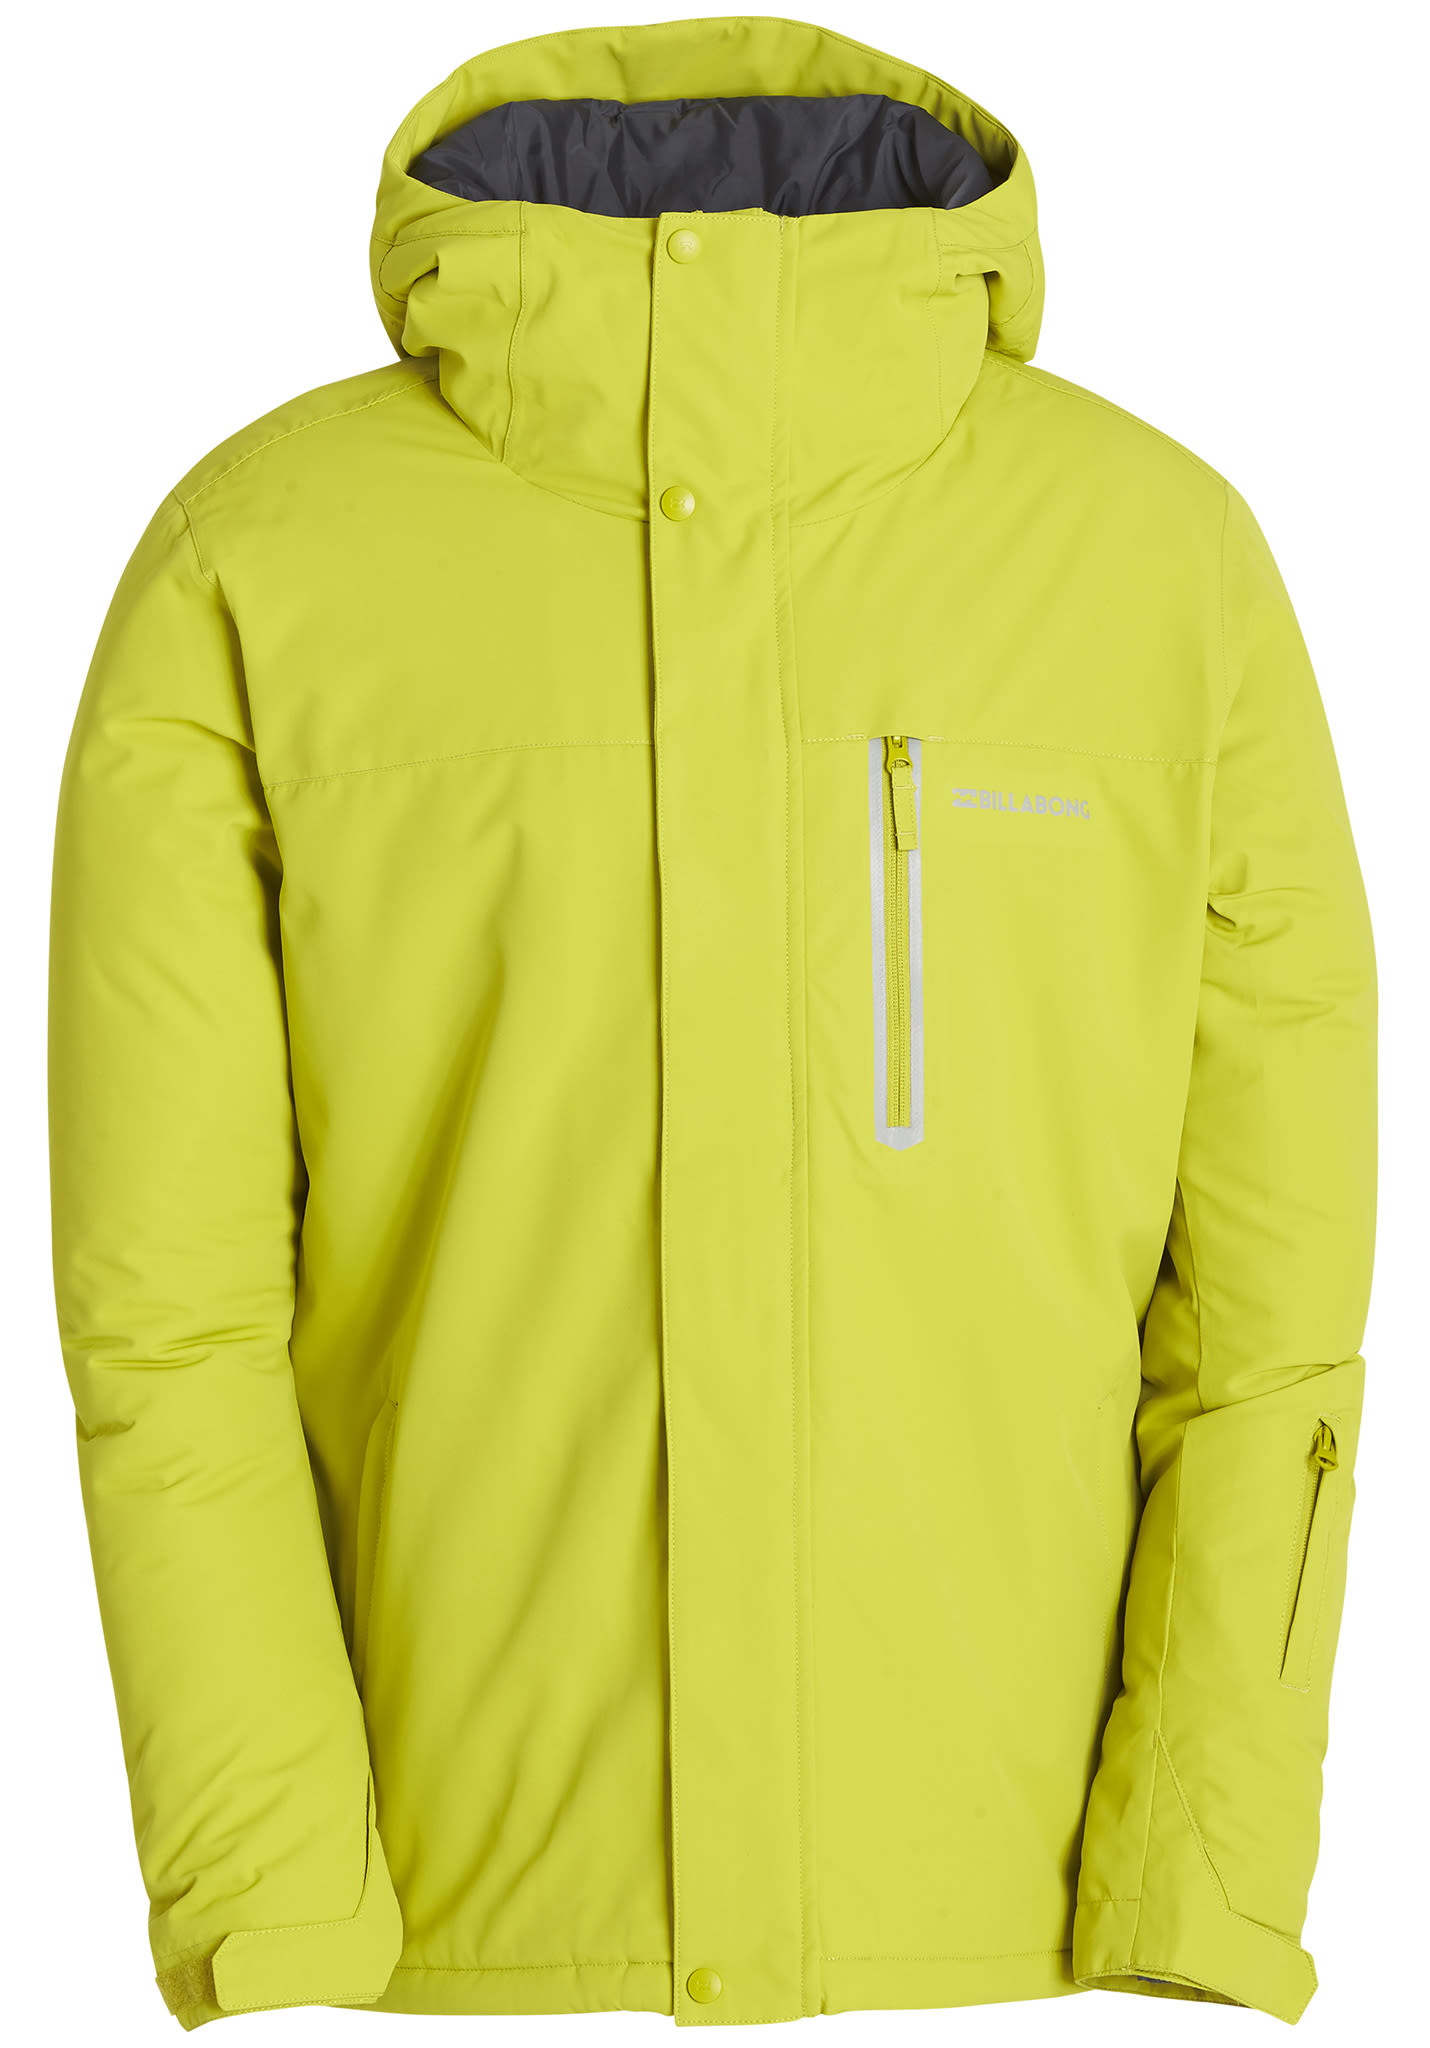 All Day, Abrigo para Hombre, Amarillo (Yellow), XL Billabong